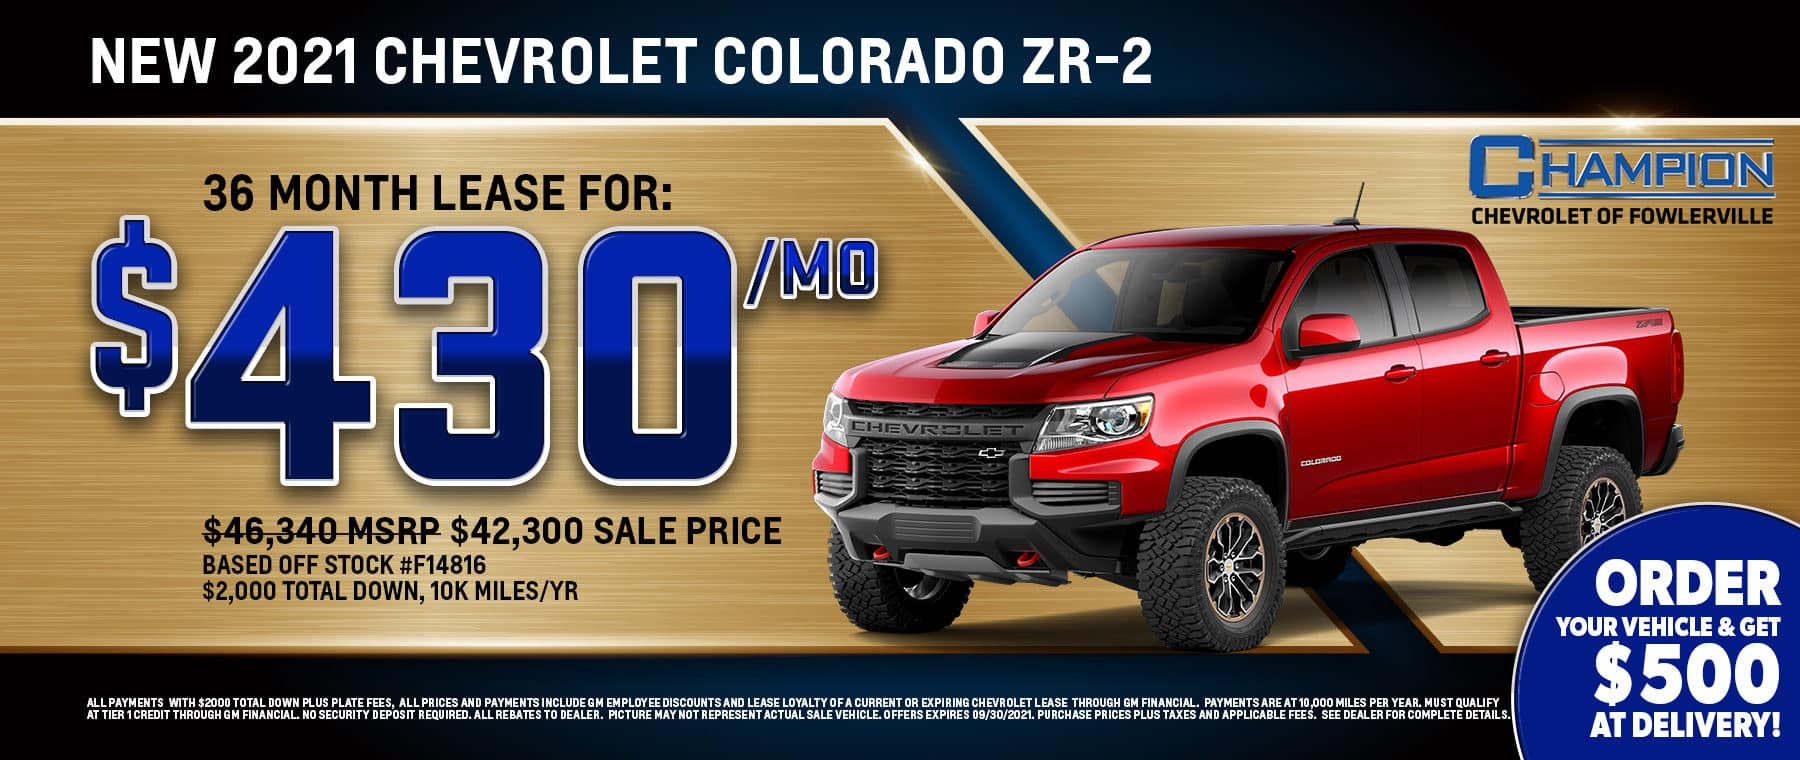 9_21_Champion_Fowlerville_Chevy_1800x760_web_banners-03